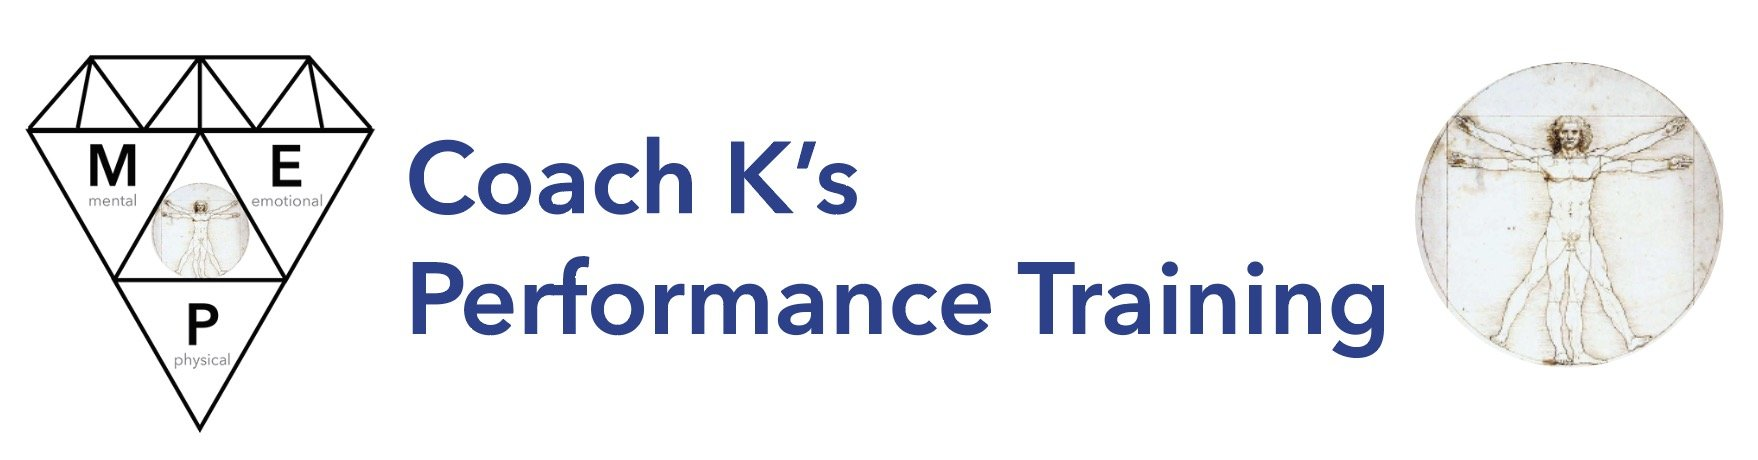 Coach K's Performance Training